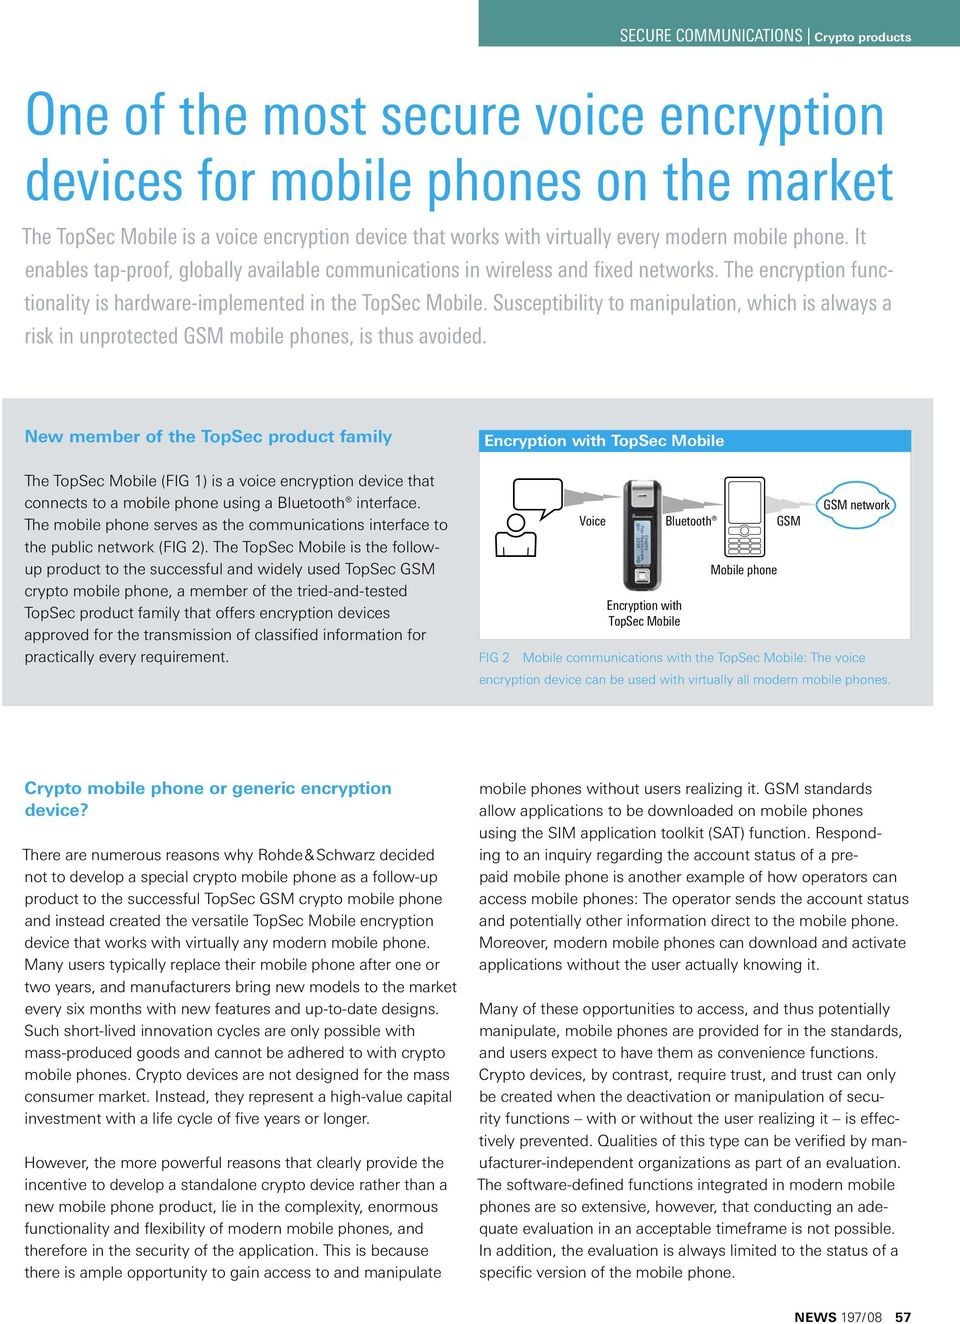 Susceptibility to manipulation, which is always a risk in unprotected GSM mobile phones, is thus avoided.